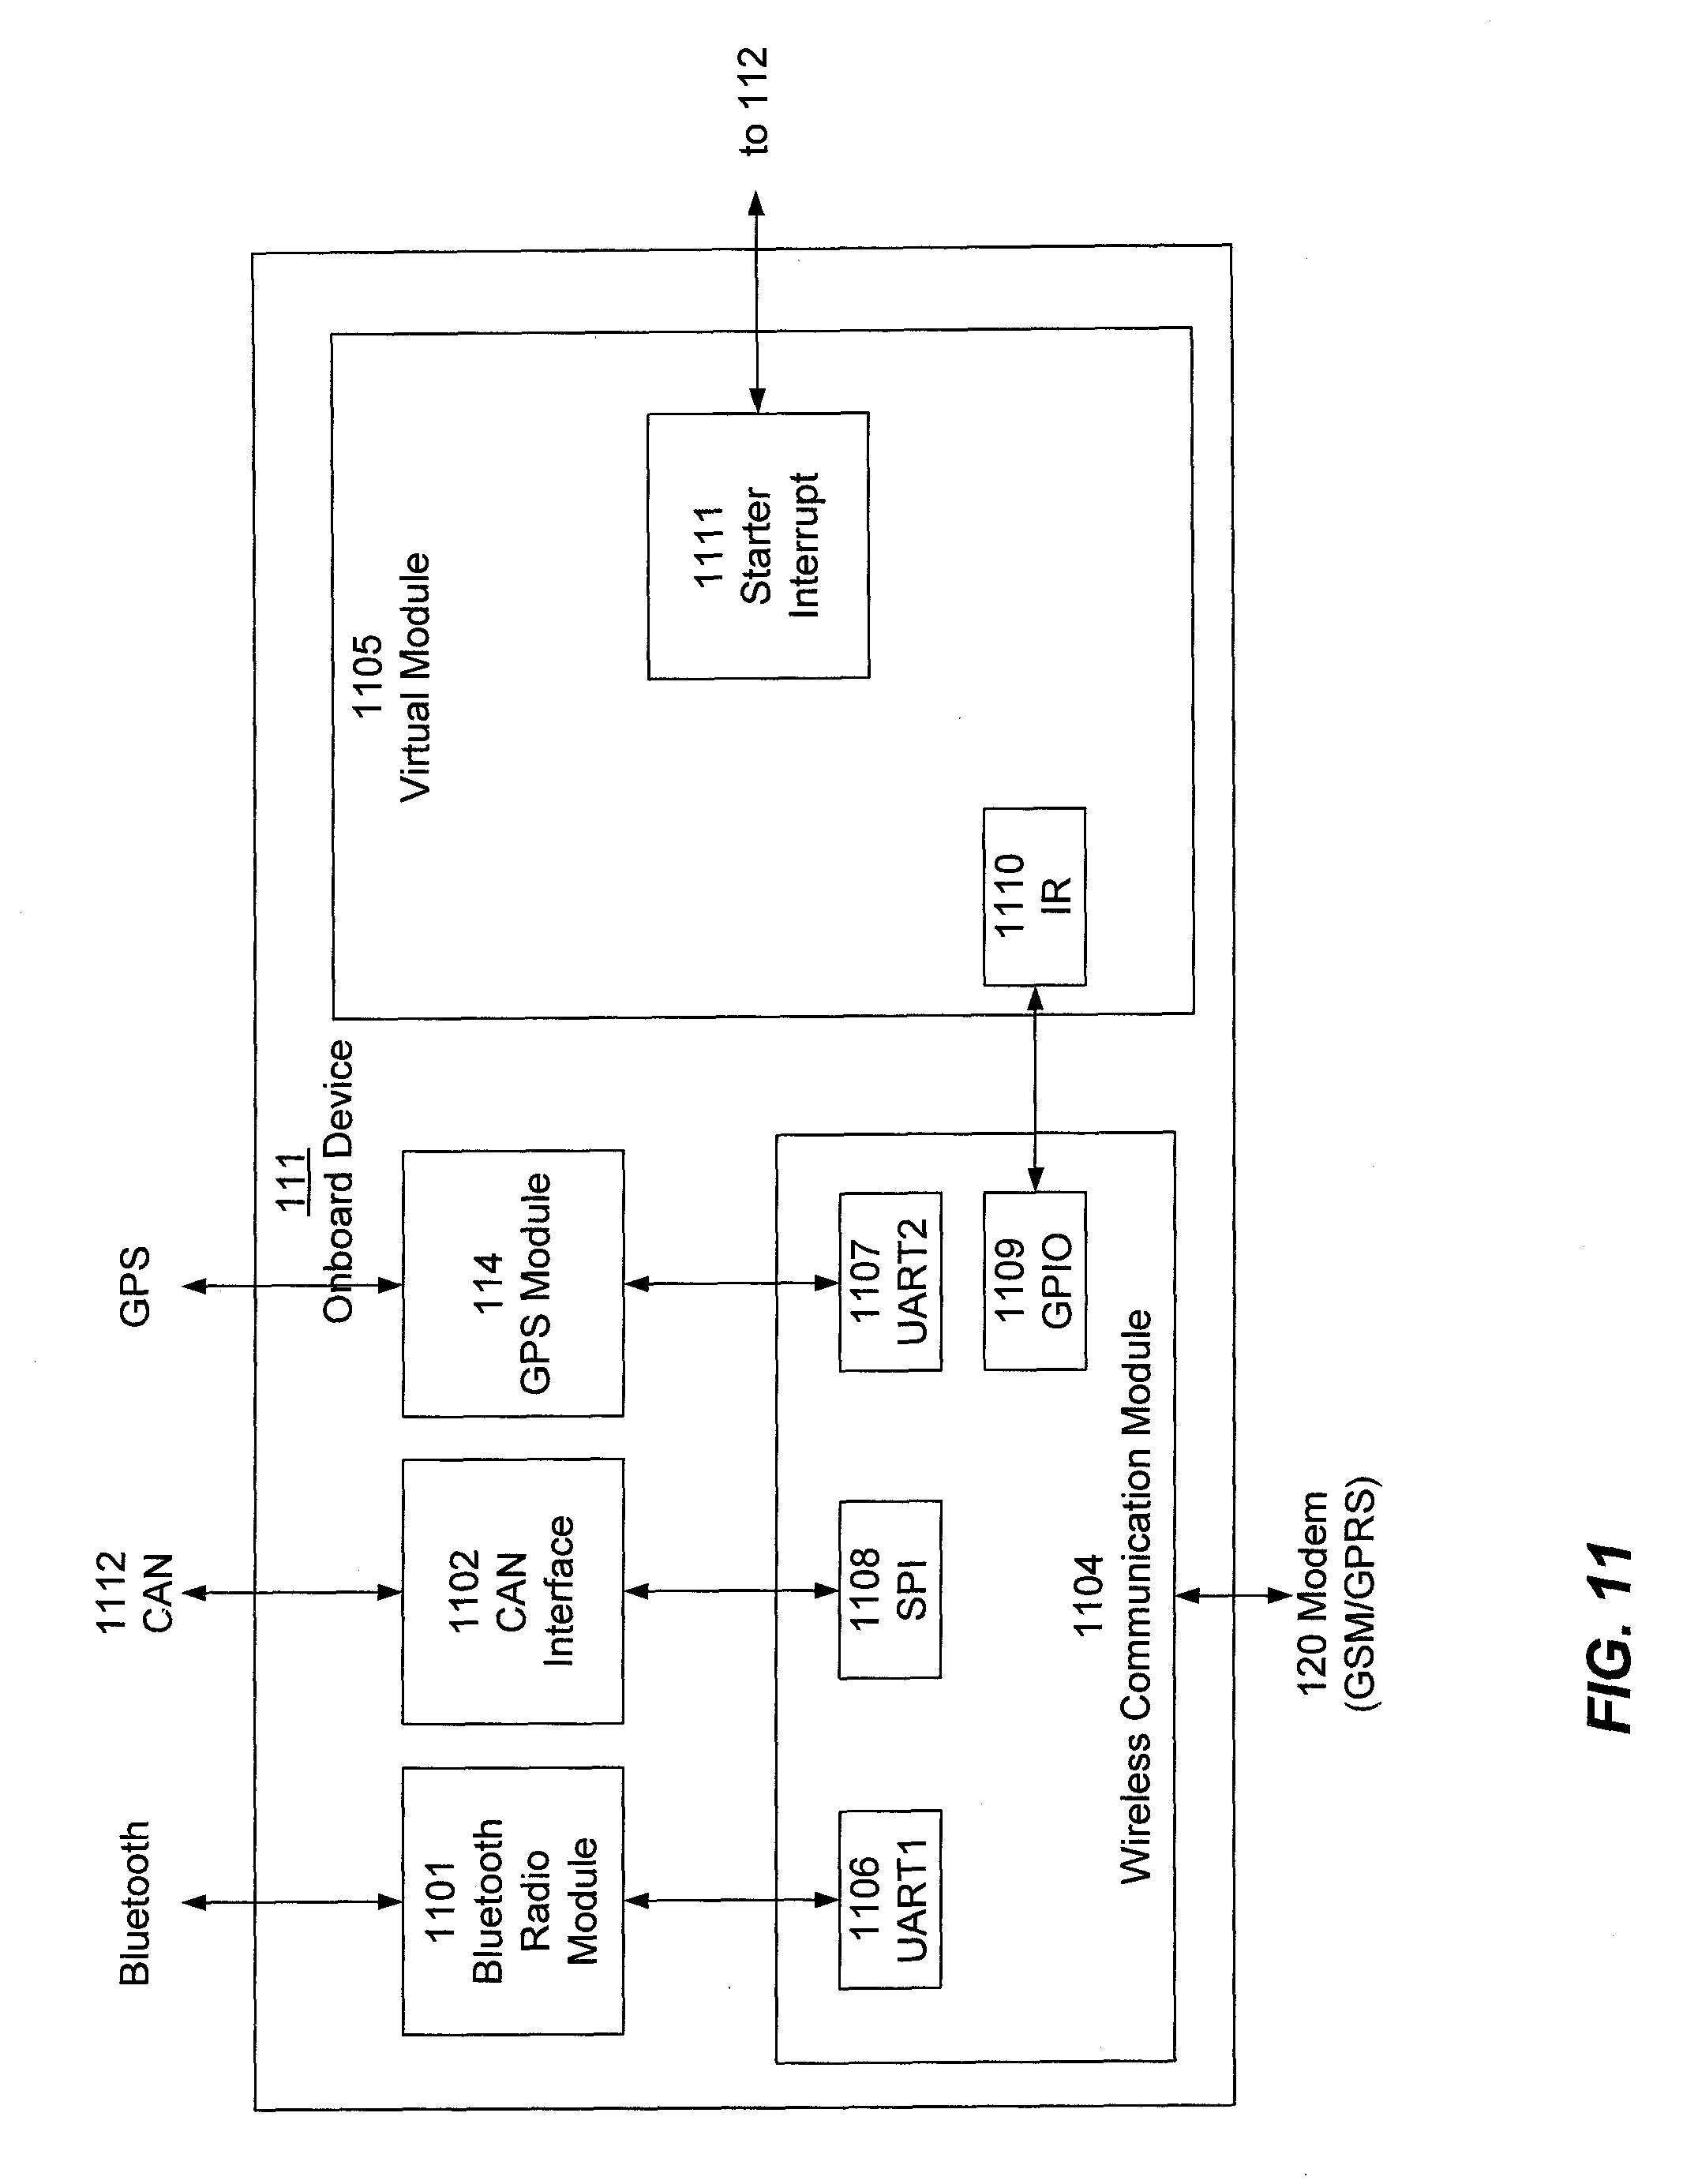 US20070185728A1 20070809 D00011 patent us20070185728 starter interrupt device incorporating loan plus gps wiring diagram at crackthecode.co